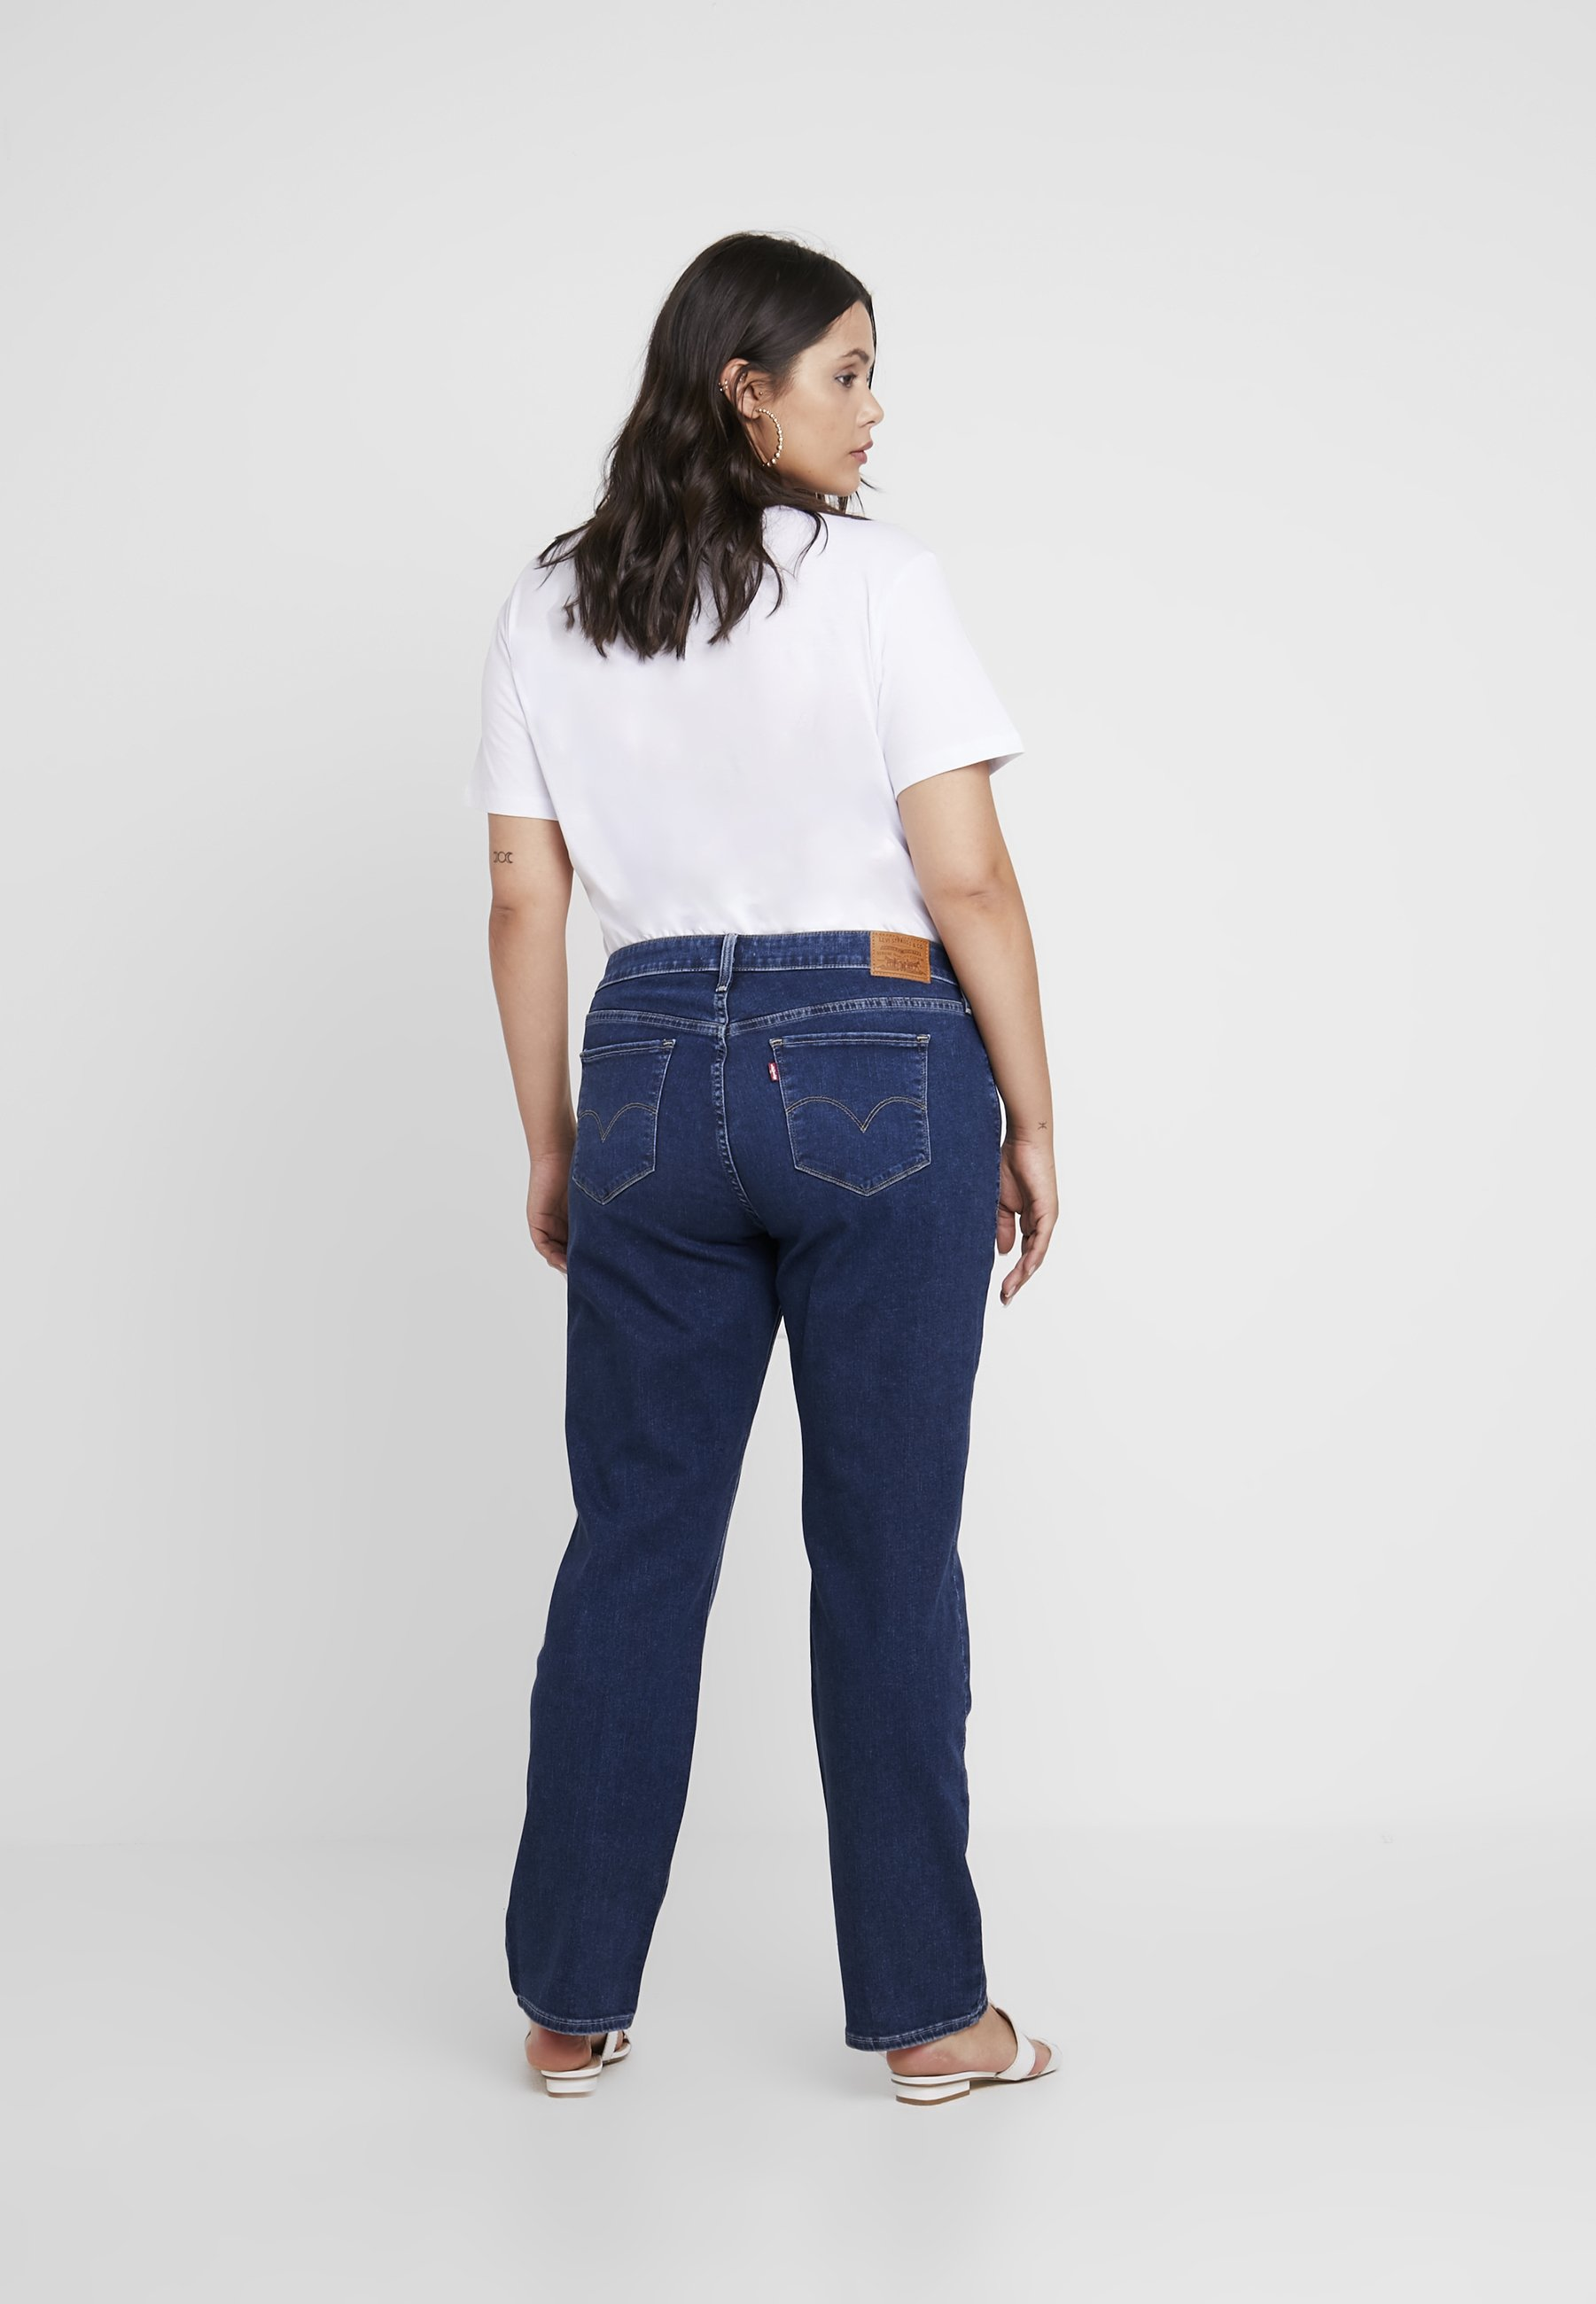 Nights Droit 314 Shaping StraightJean Levi's® Plus Pl Paris H92IYWED